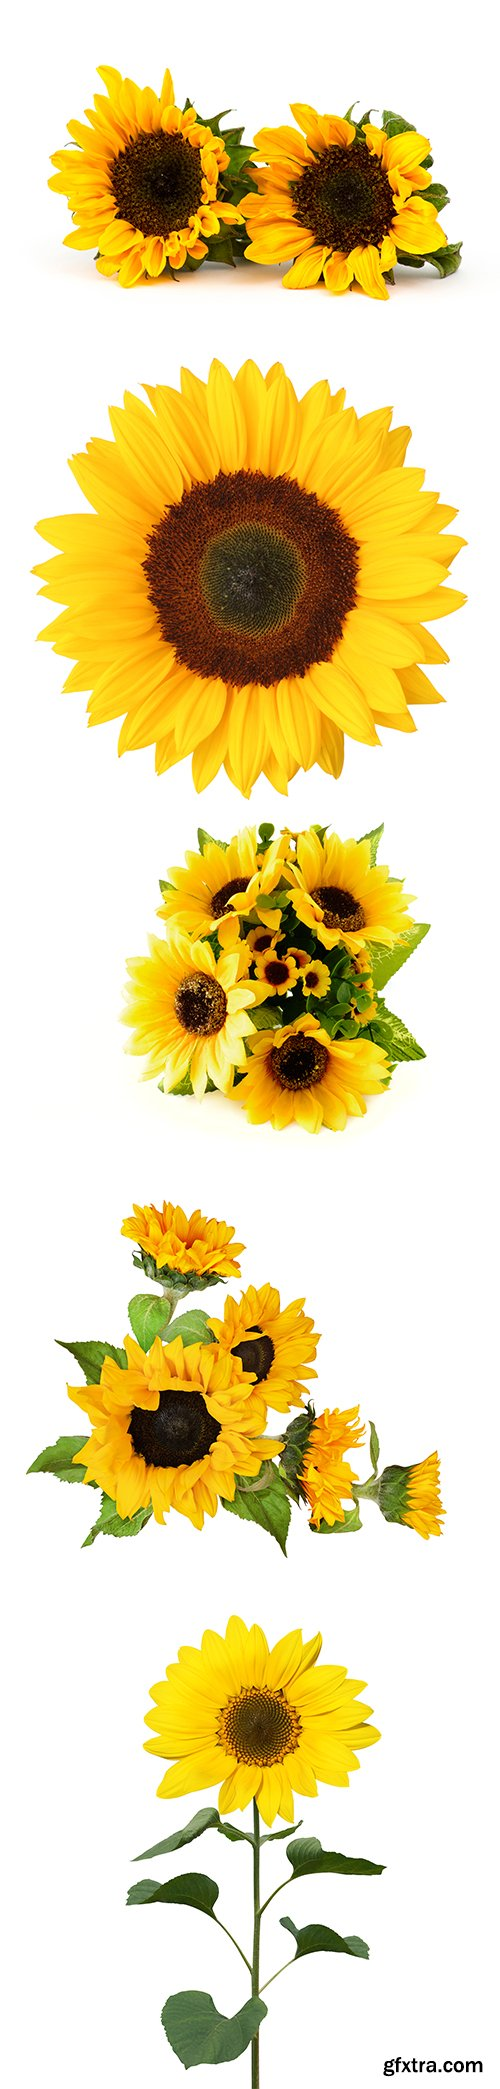 Sunflowers Isolated - 9xJPGs